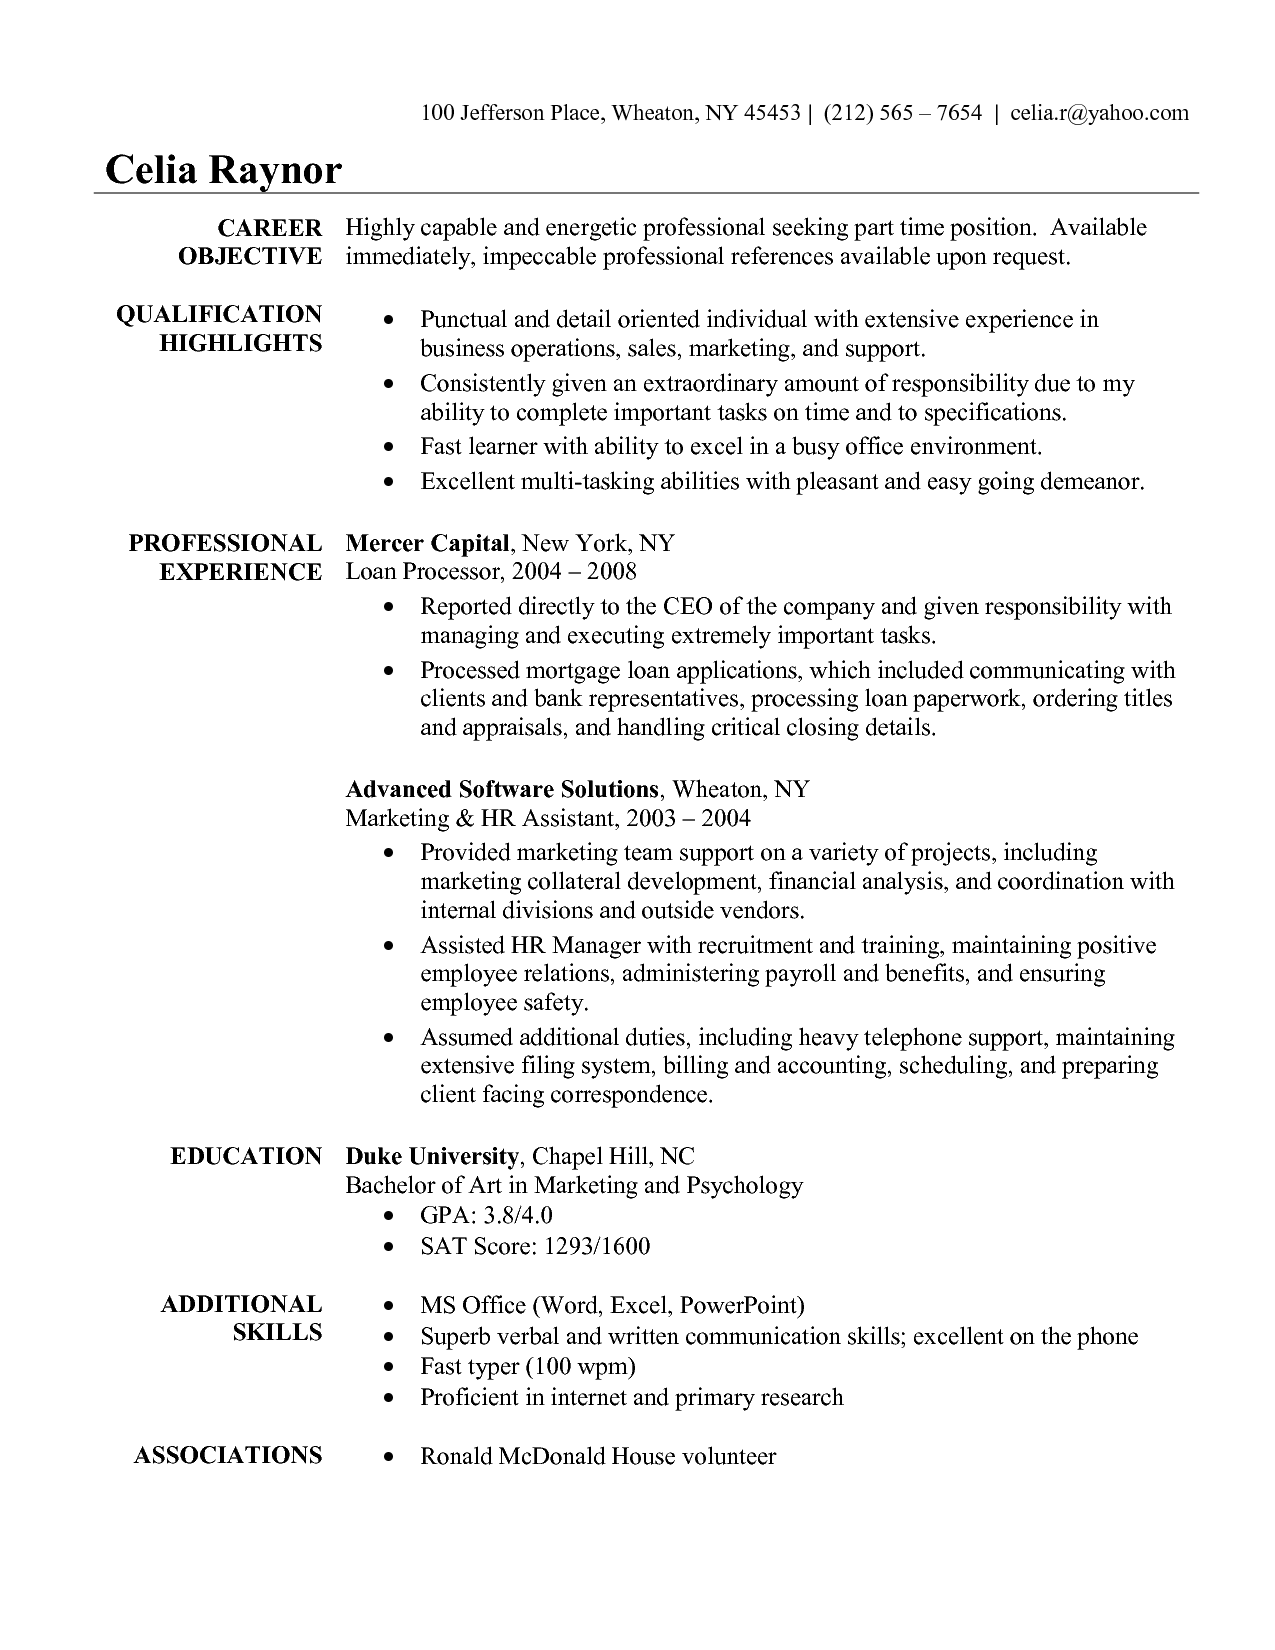 Resume Resume Headlines Drfanendo Worksheets For Elementary School